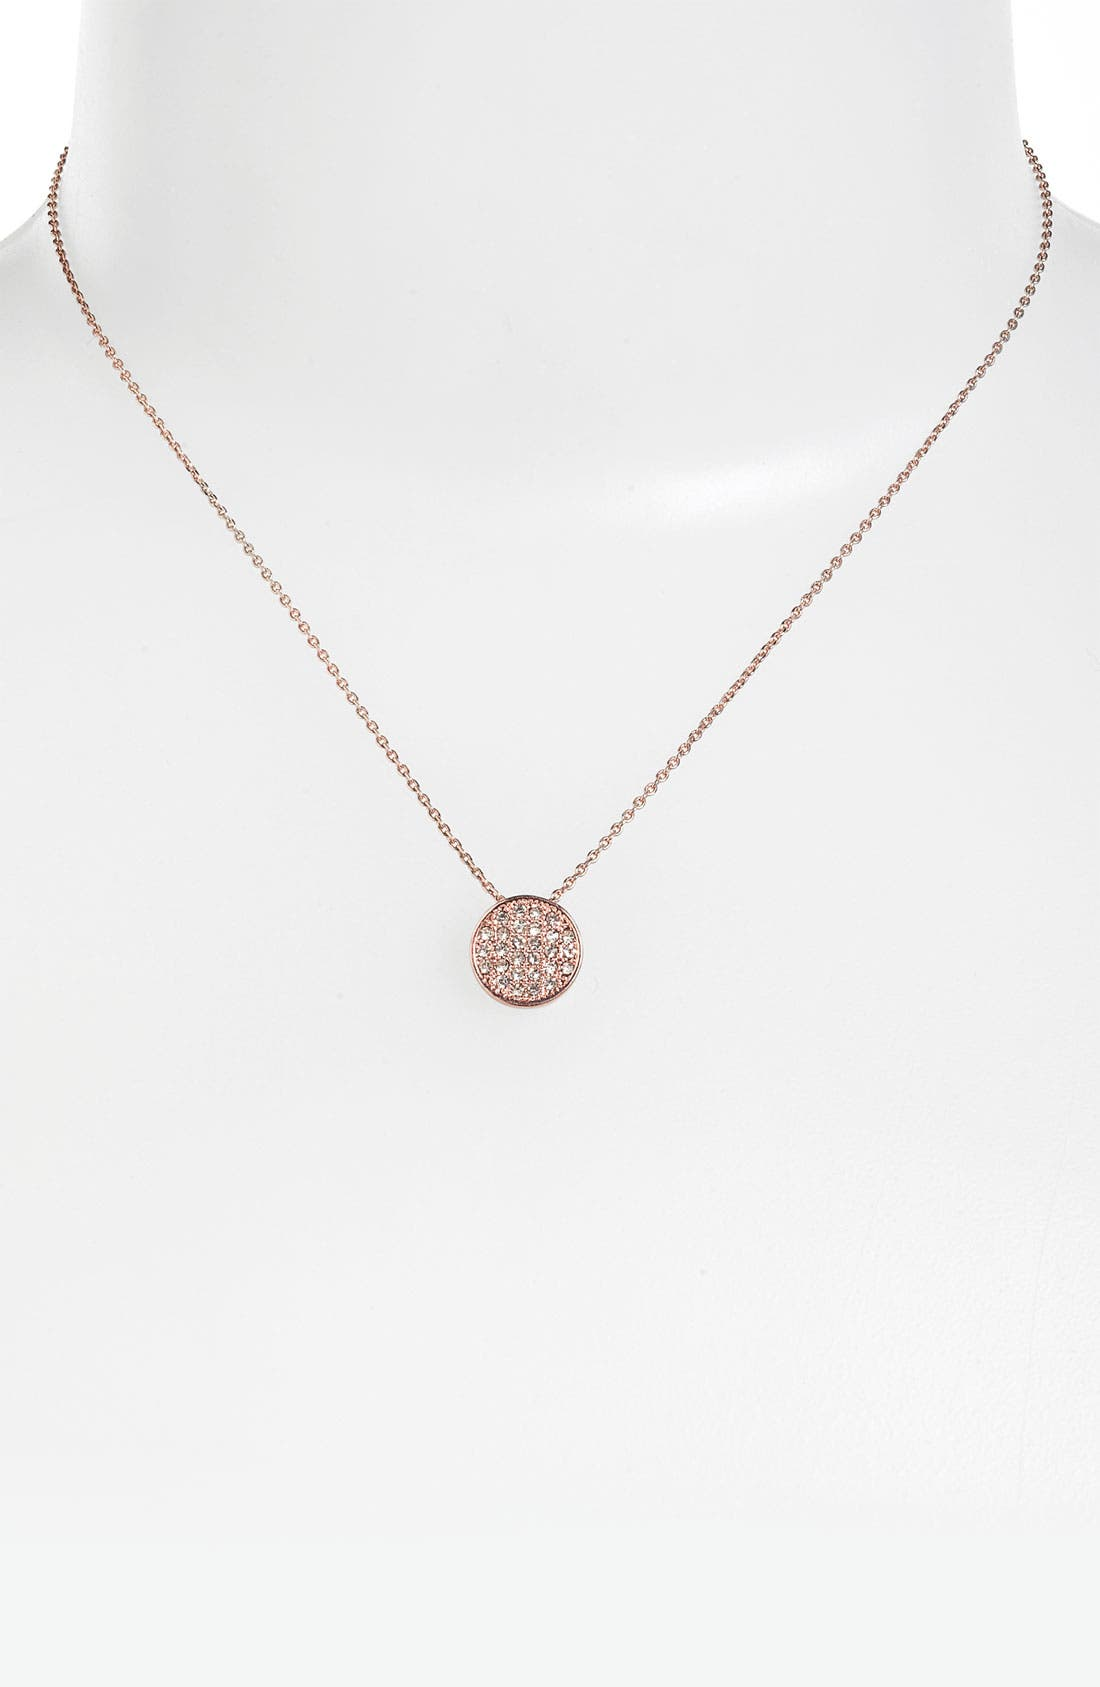 Alternate Image 1 Selected - Stephan & Co. Pavé Circle Pendant Necklace